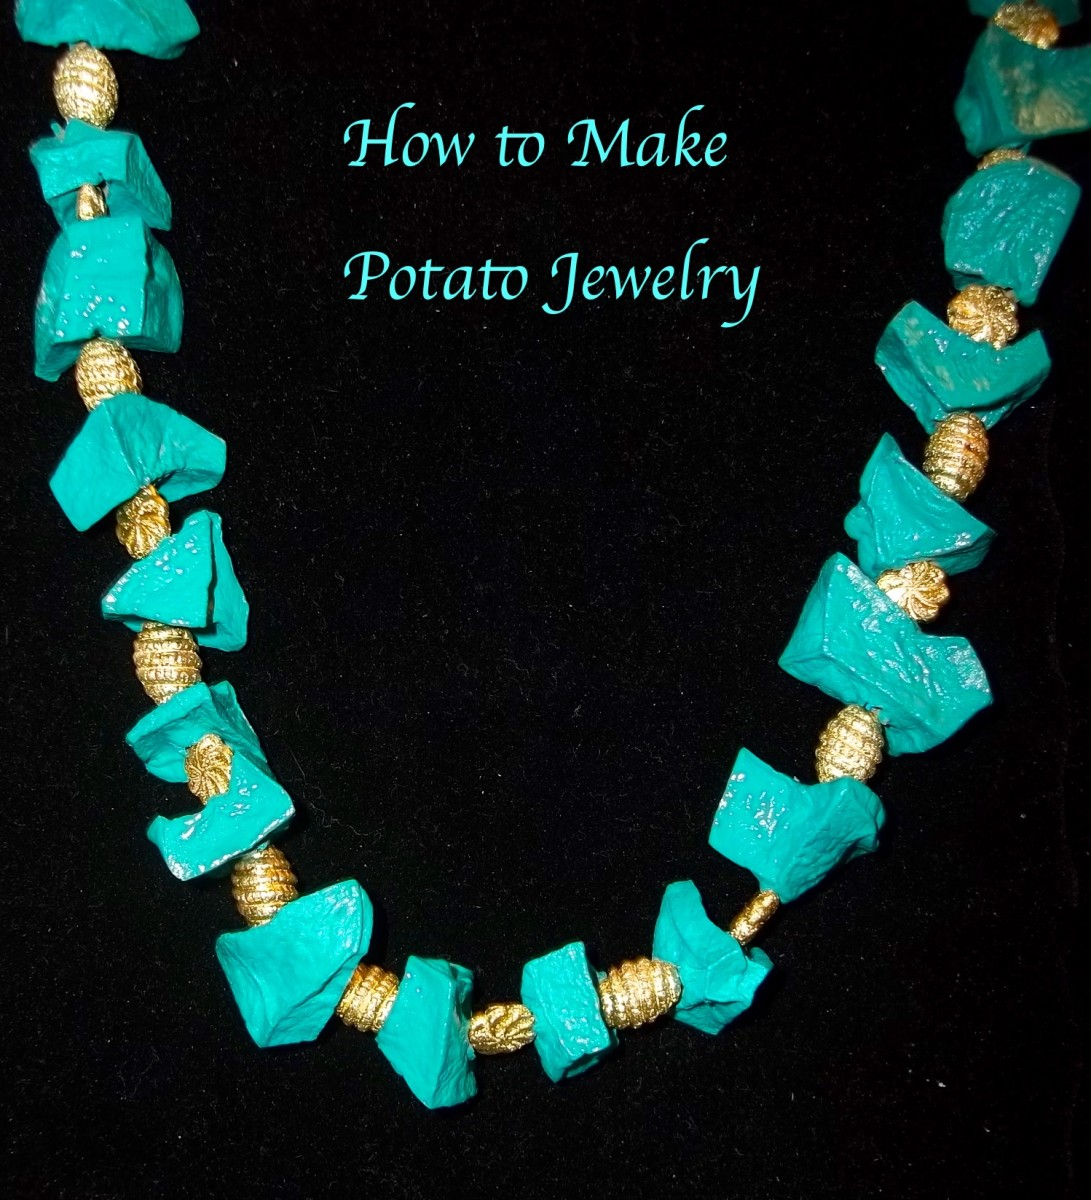 How to Make Potato Jewelry